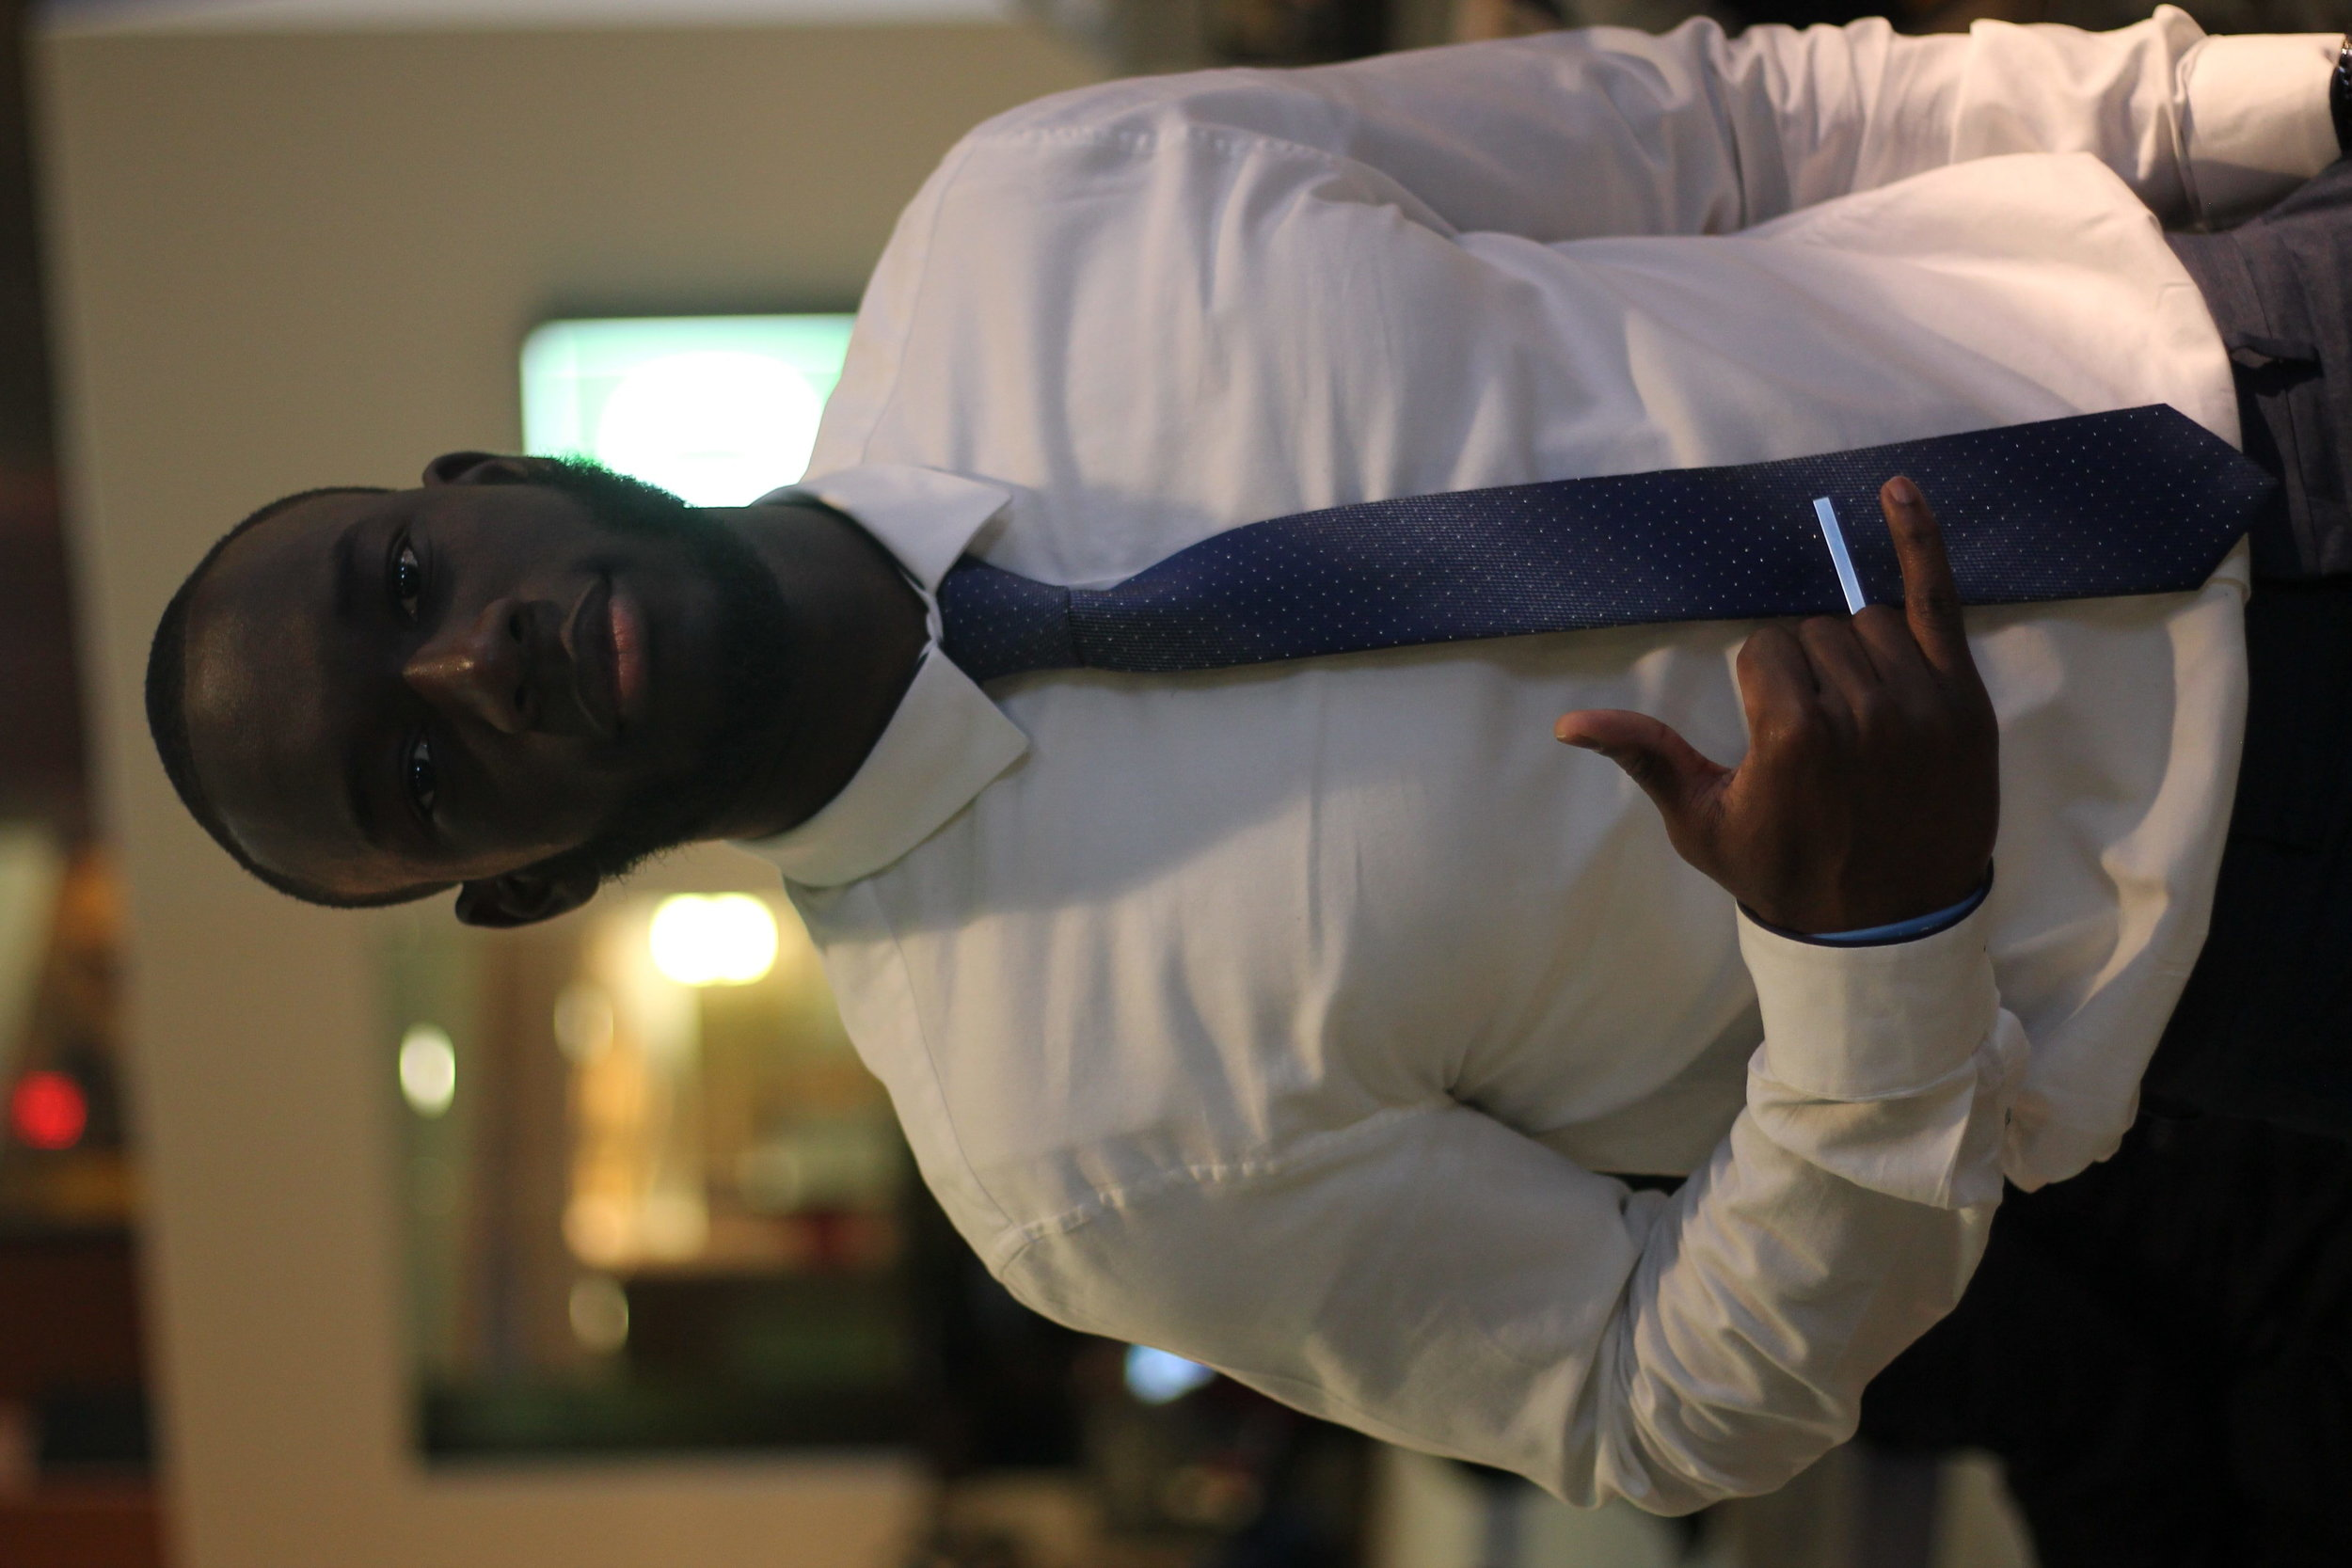 Brandon Palmer I am part of a fraternity. It is a Collegiate Black Fraternity that was established in 1906 and our founder's day is coming up this Saturday, so it is going to be 110 years since we have been established. We are having our party this Saturday at Hofstra USA, so it's going to be great. It will definitely be a party. I also like to play sports. I play basketball in my free time [and] work out. I used to play football in my high school. If Hofstra still had a football team I would have definitely played. My favorite football team is the Ravens. I was really attached to my parents so Hofstra seemed like a great option where I could be independent, but also closer to home. Something about the campus just drew my attention and I just got that feeling, like Hofstra, that's the one.